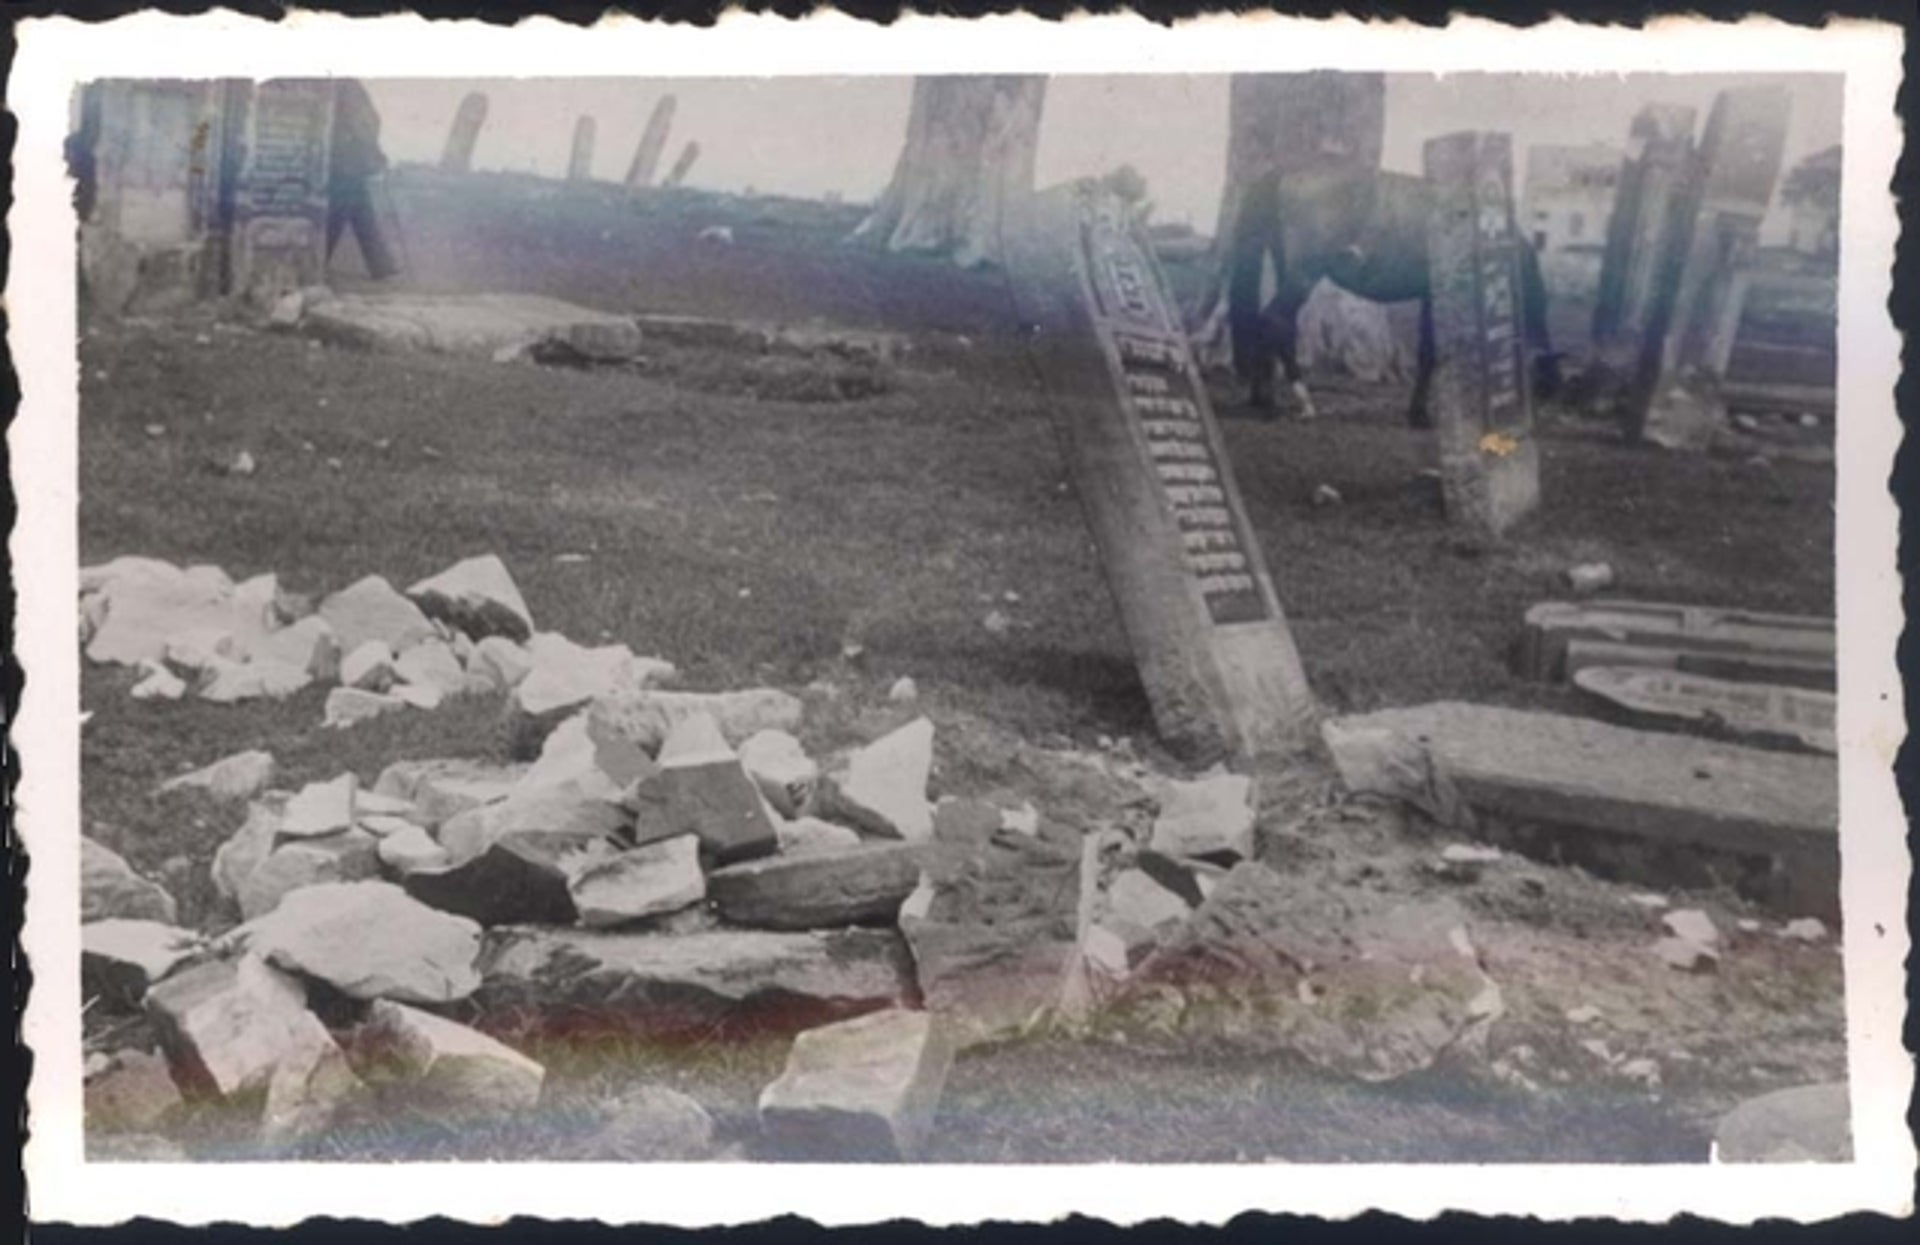 A desecrated Jewish cemetery.